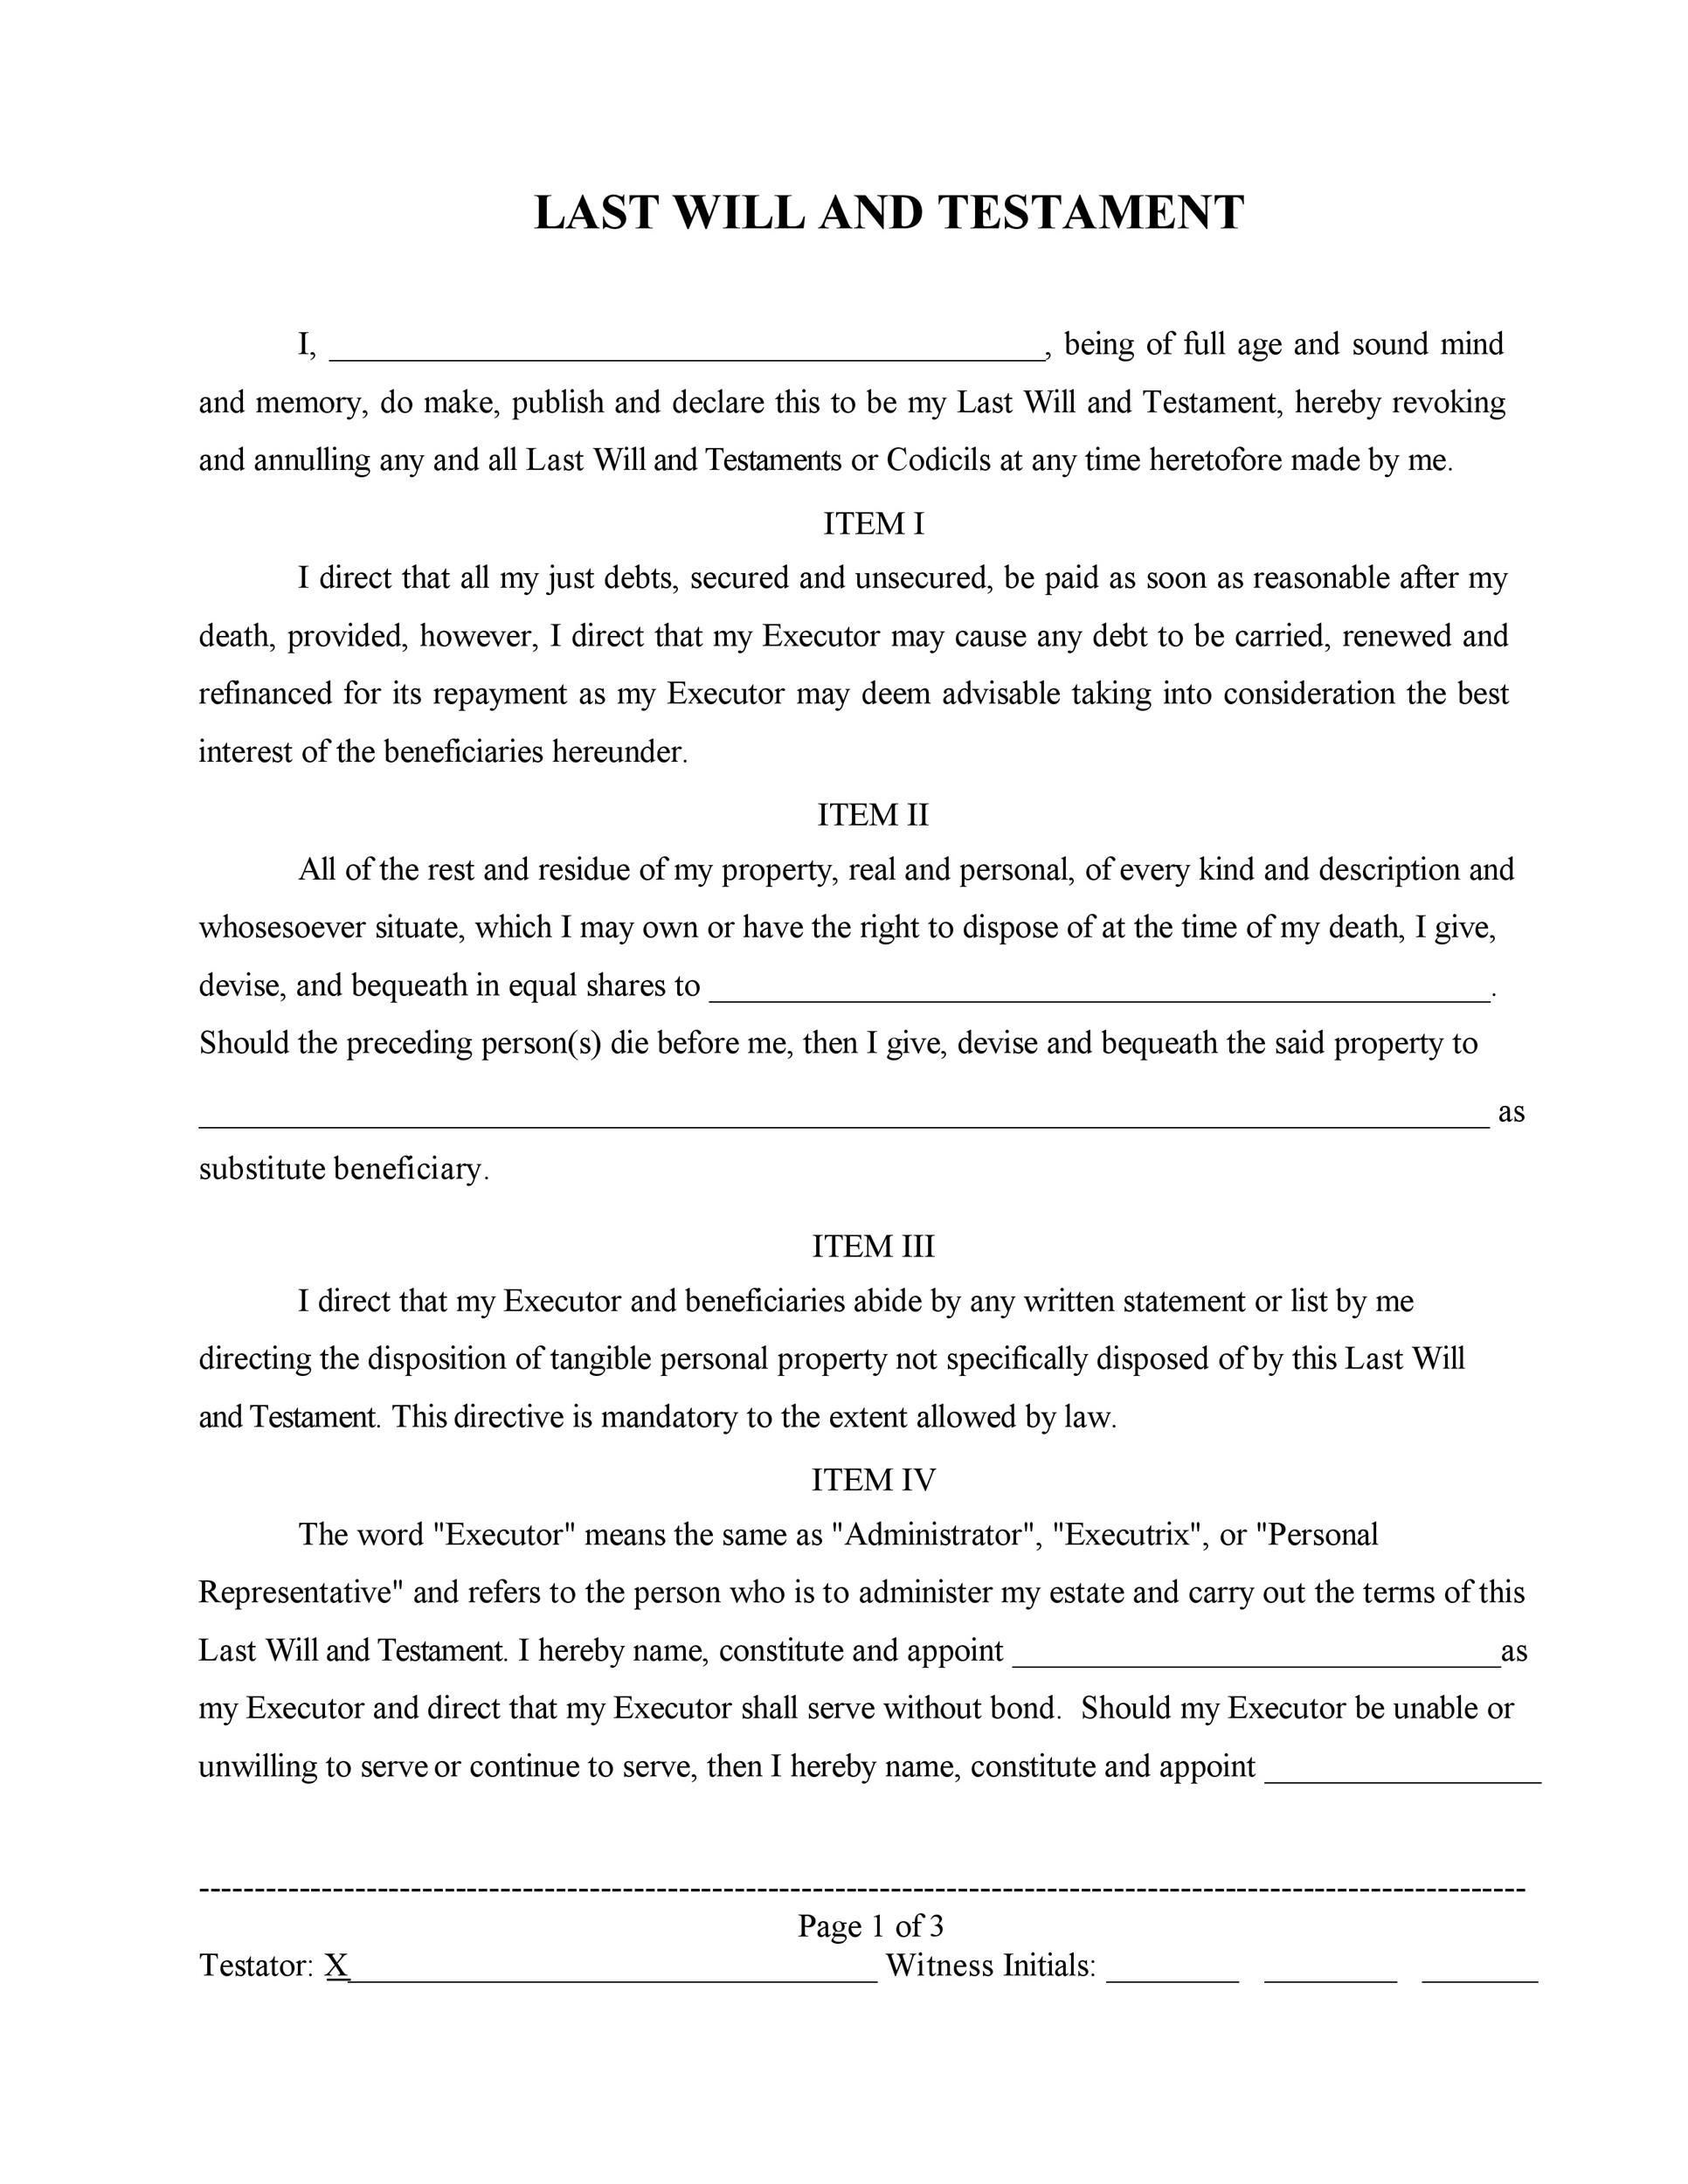 39 last will and testament forms templates template lab printable last will and testament template 01 solutioingenieria